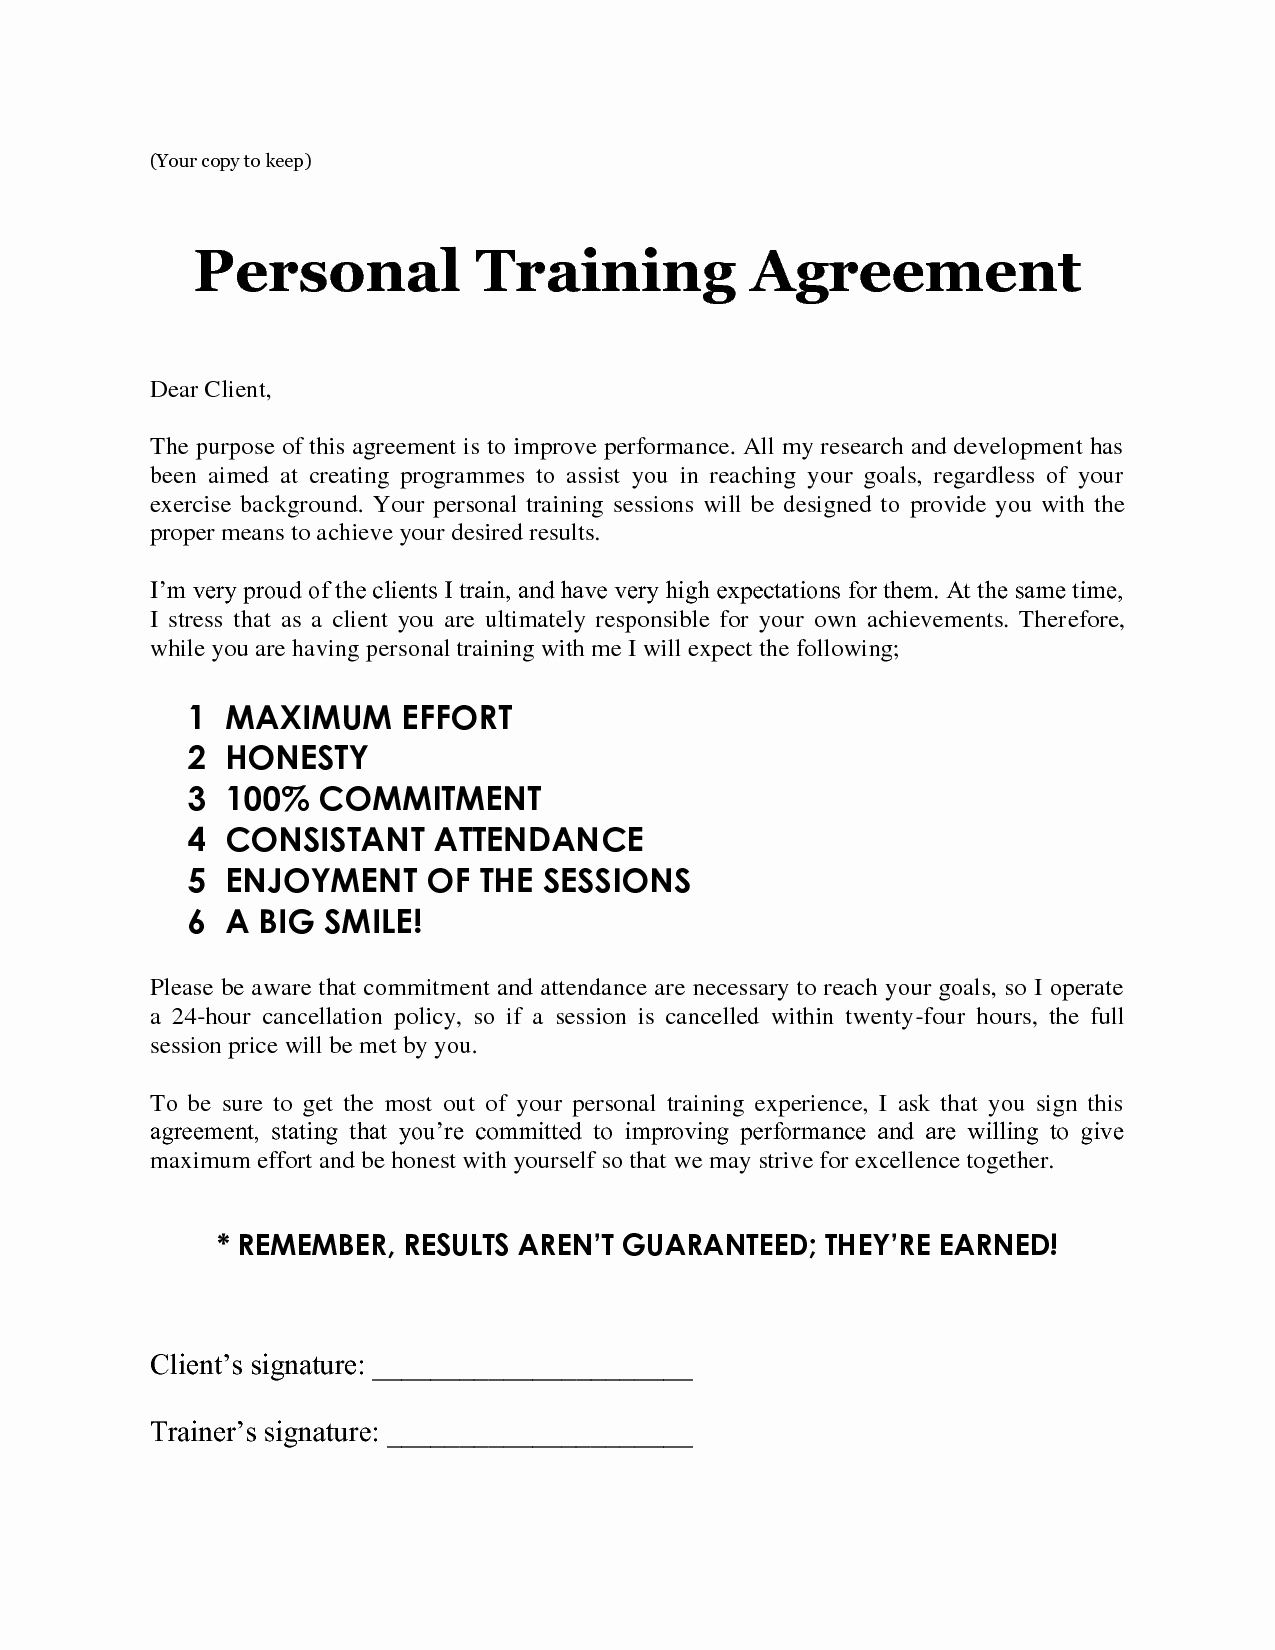 Template Ideas Download Client Agreement Form Personal Training With Personal Training Cancellation Policy Template